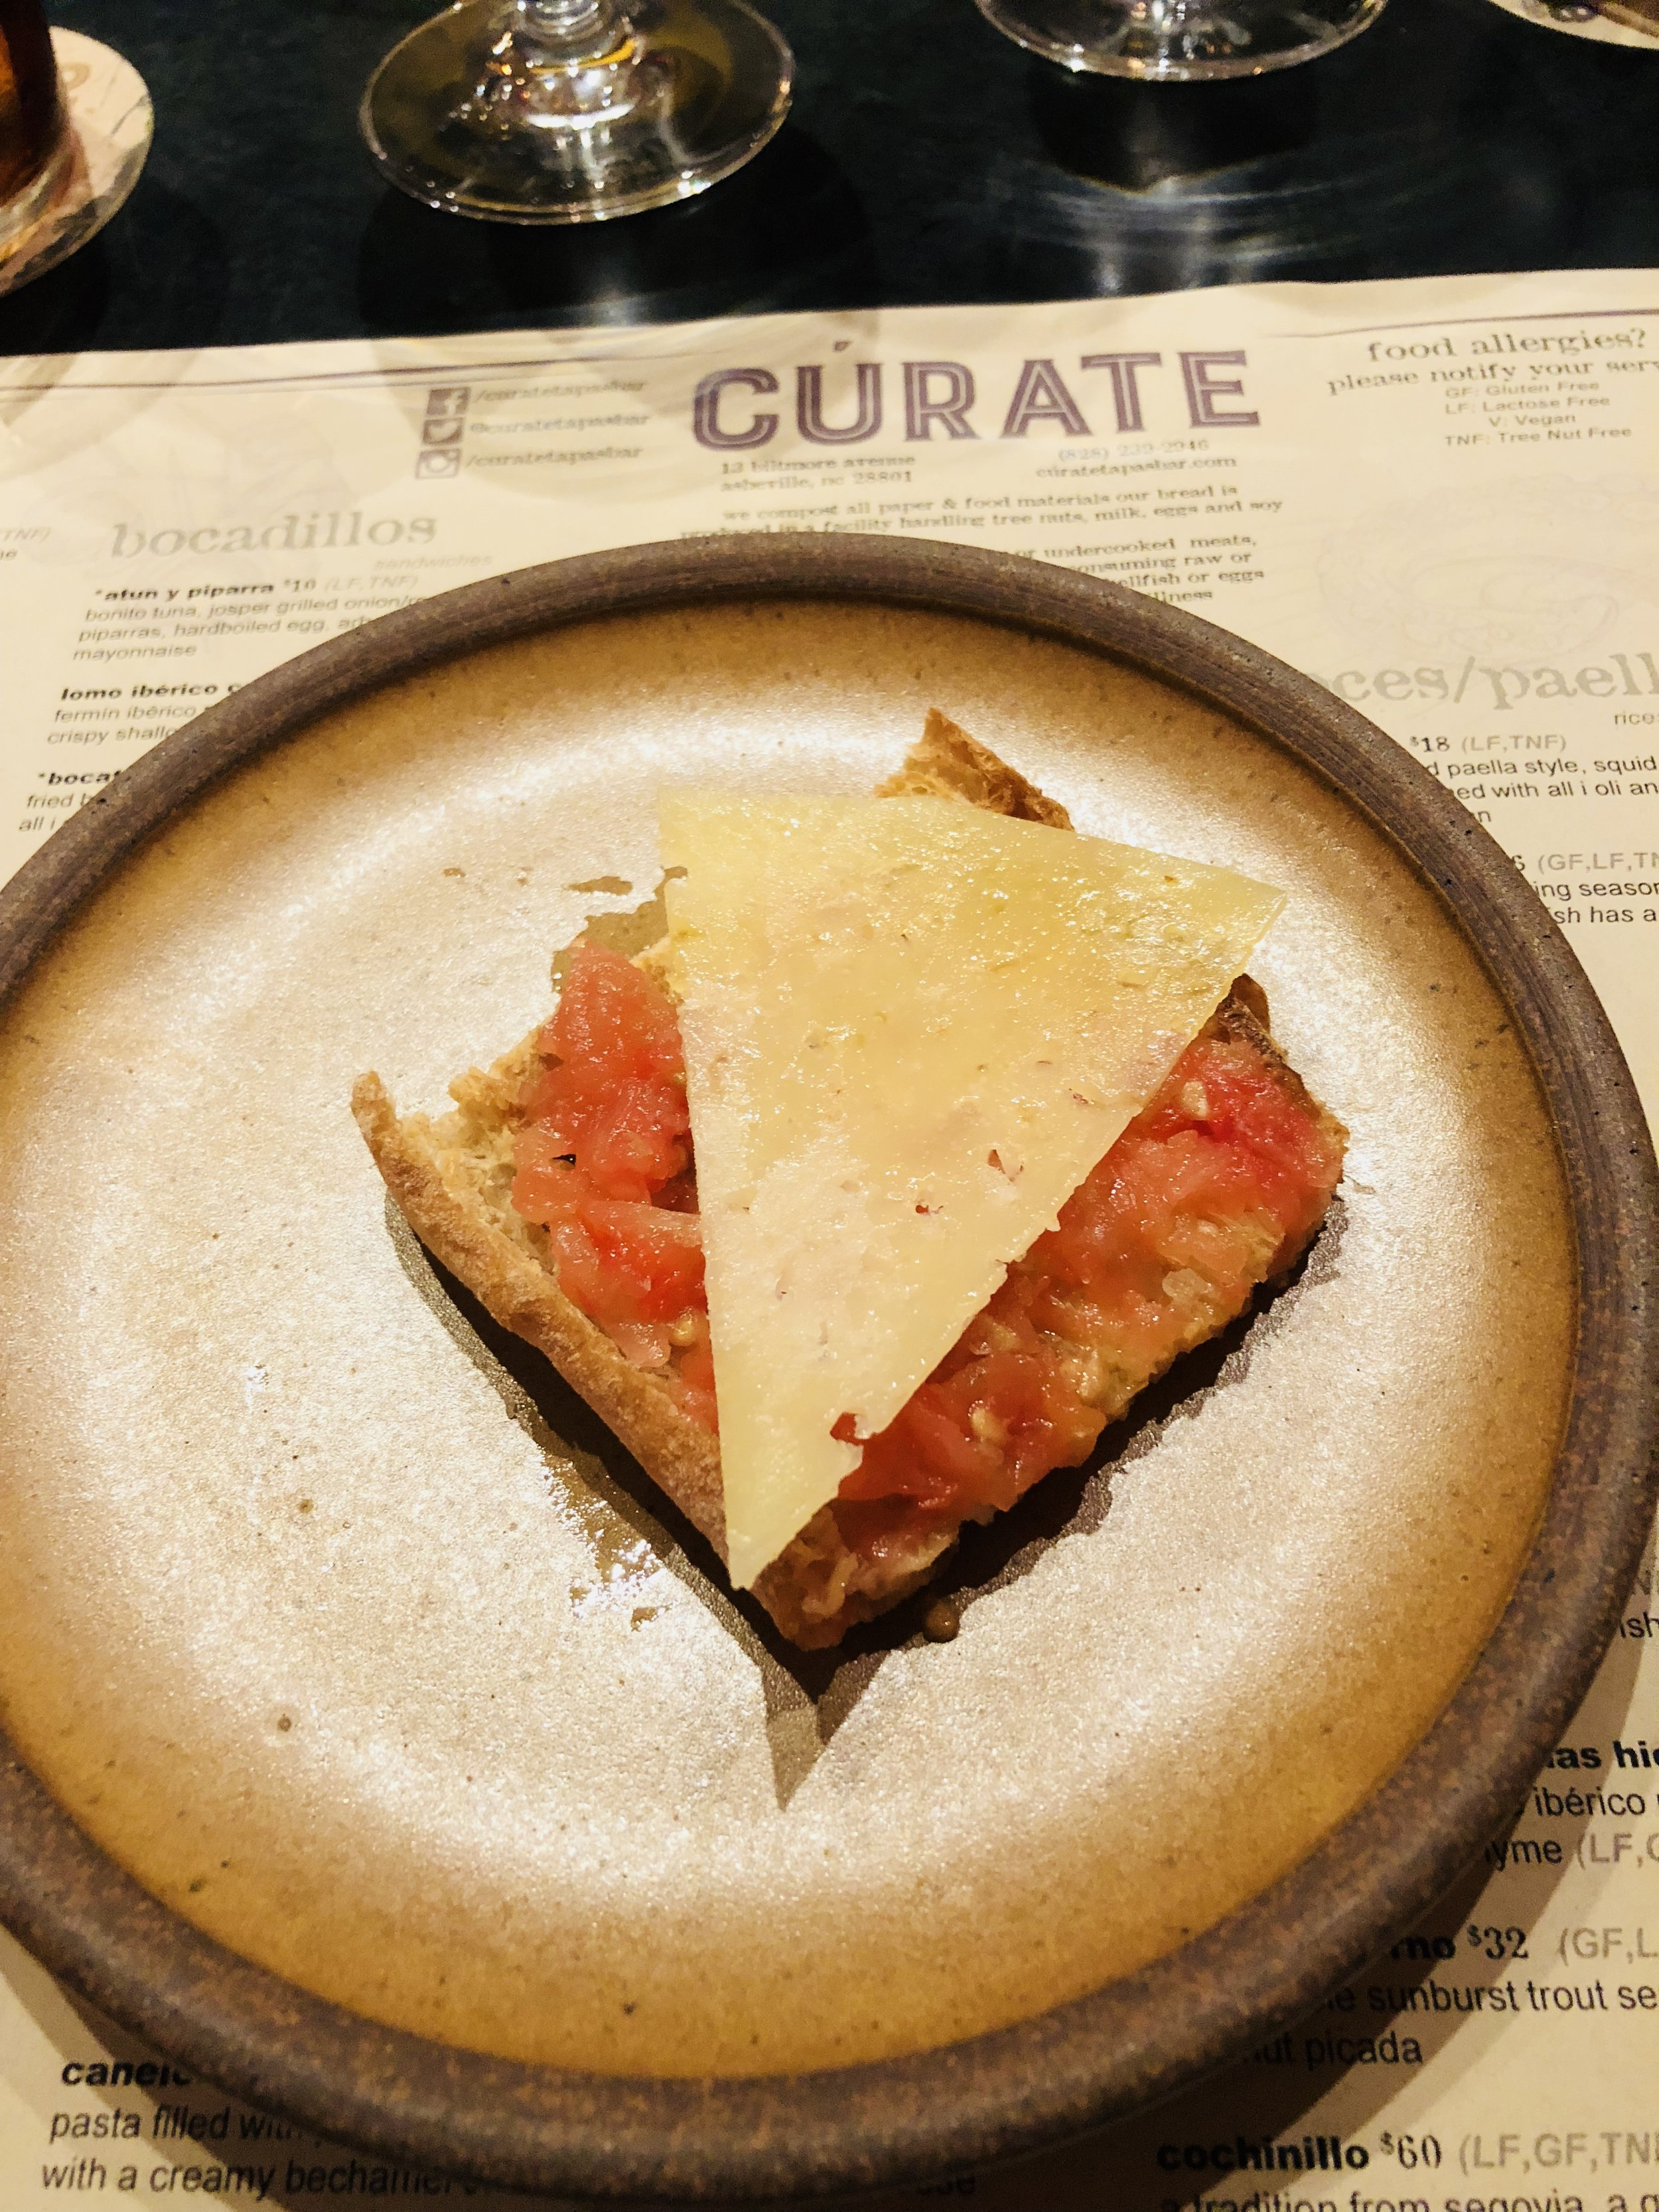 Pain de cristal con tomate with manchego cheese at Cúrate in Asheville